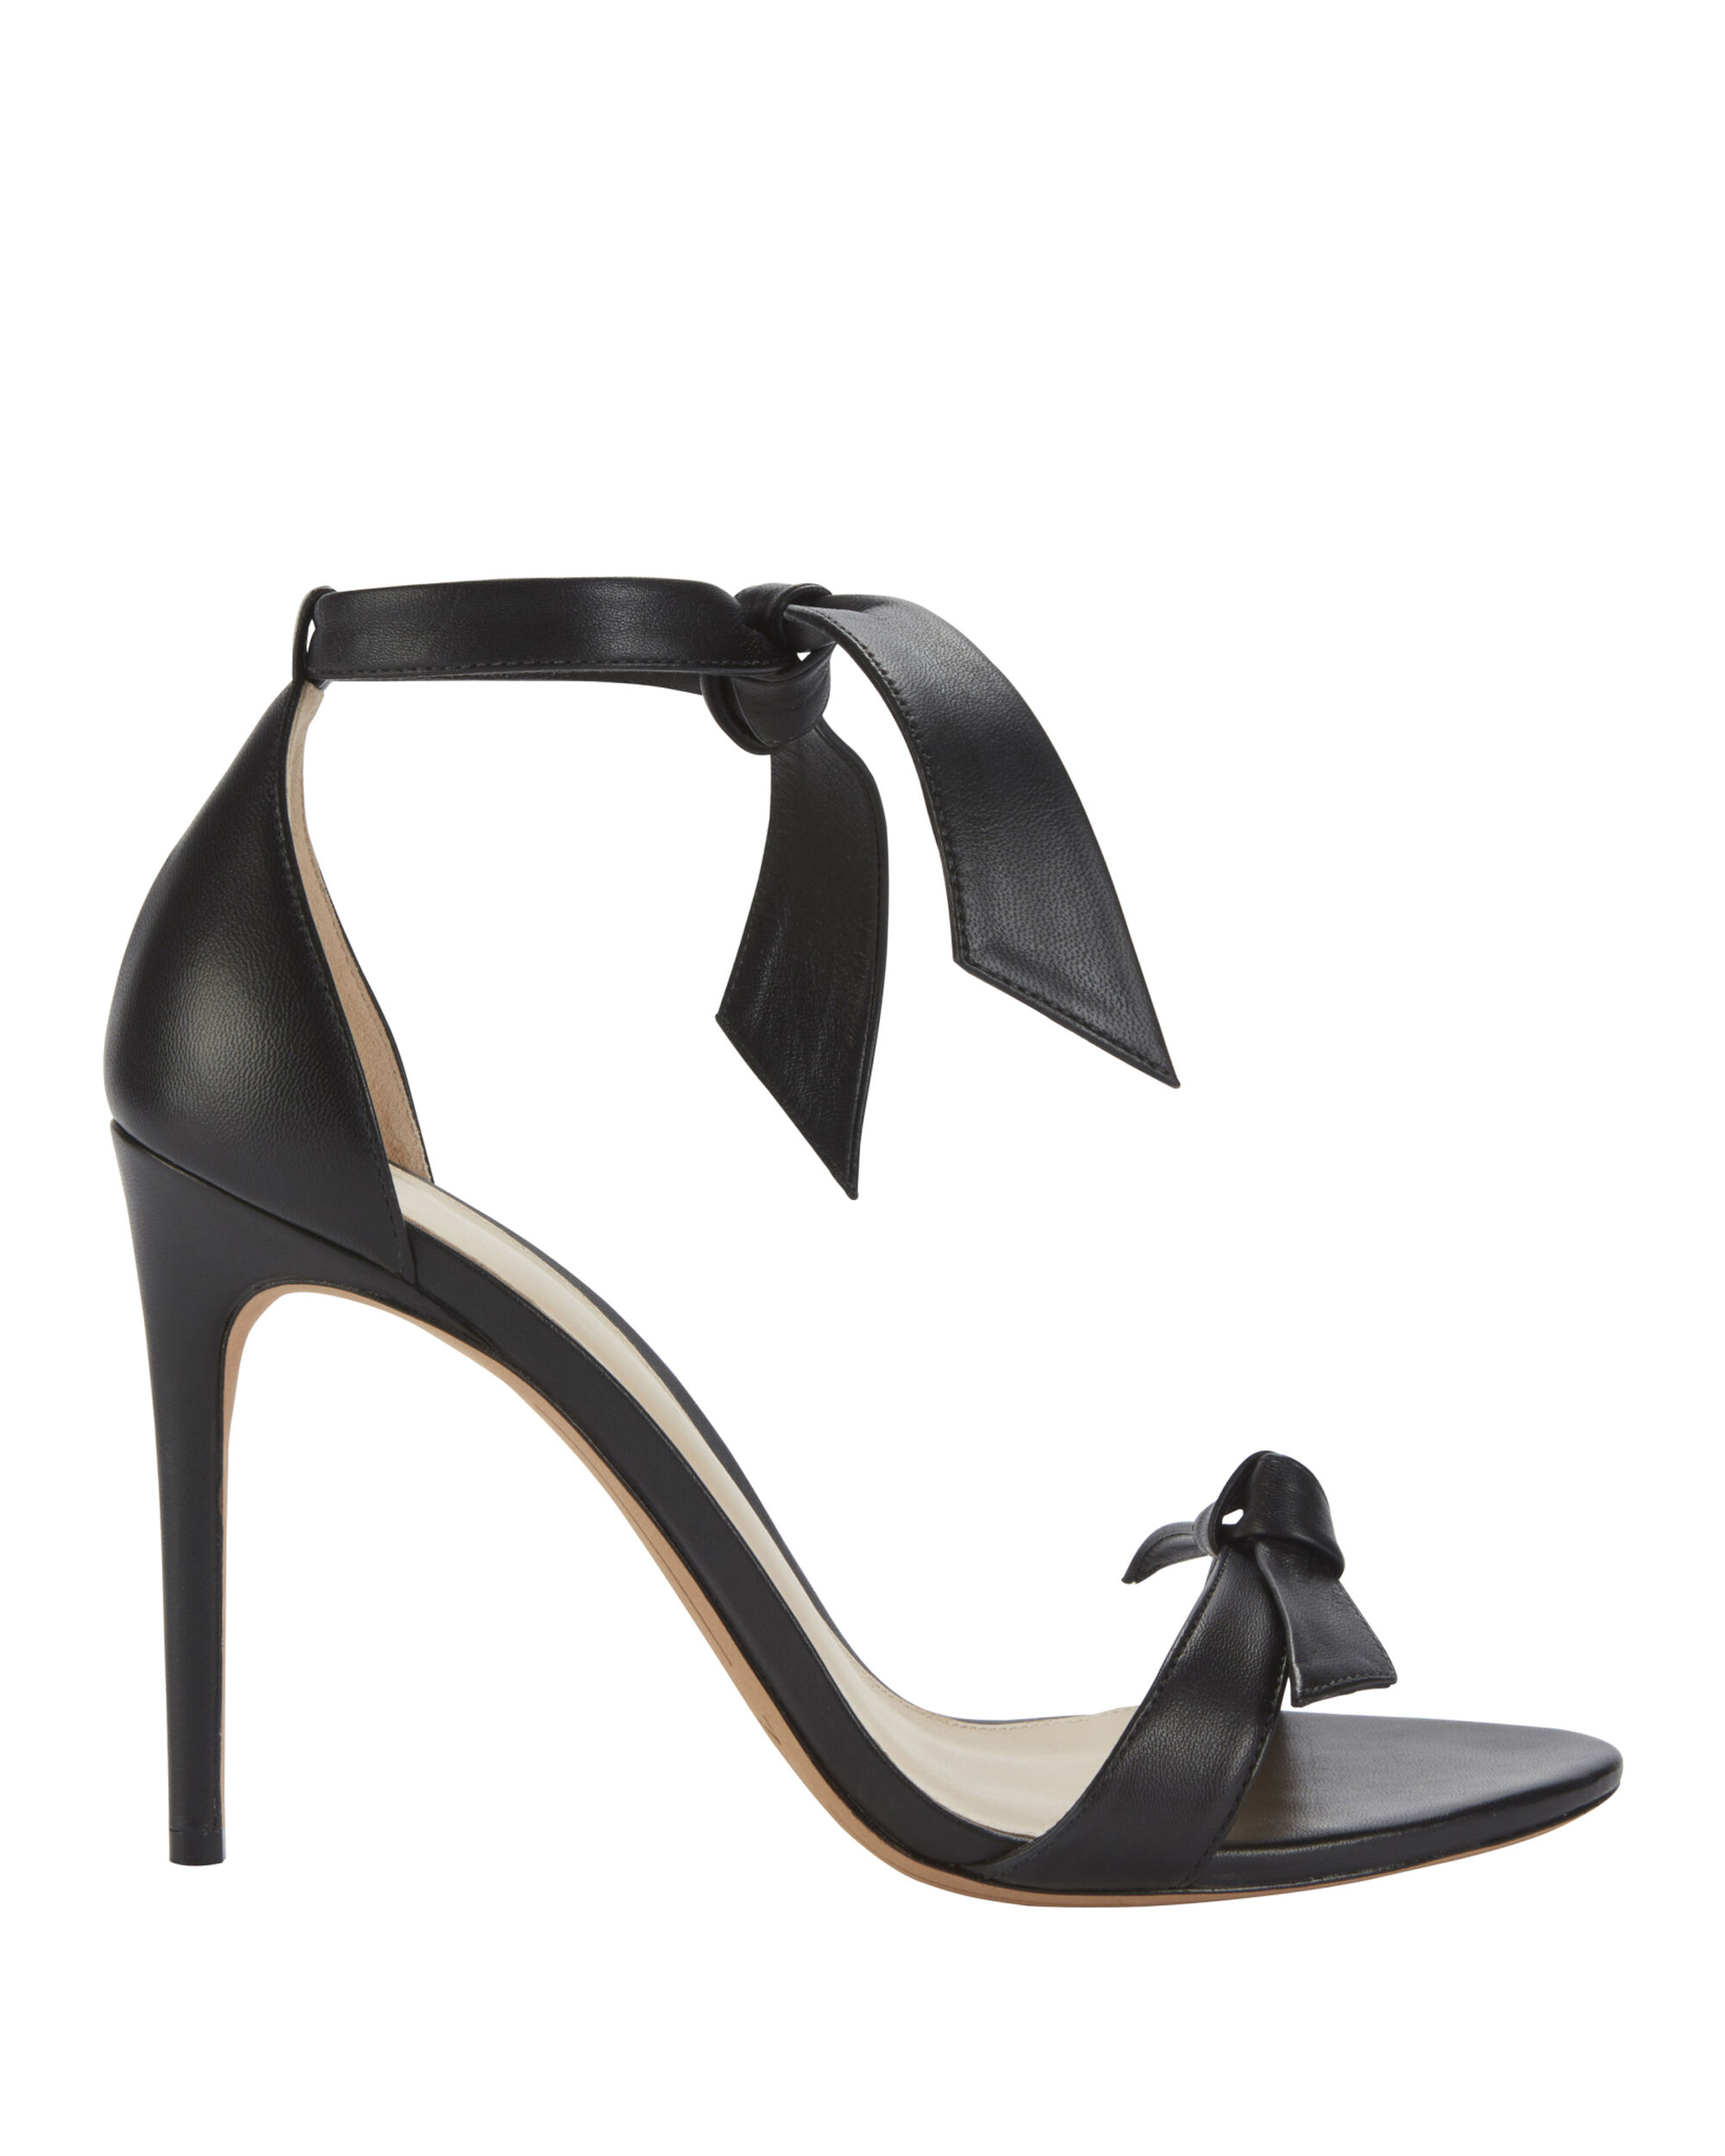 Clarita Double Bow Black Leather Sandals, BLACK, hi-res